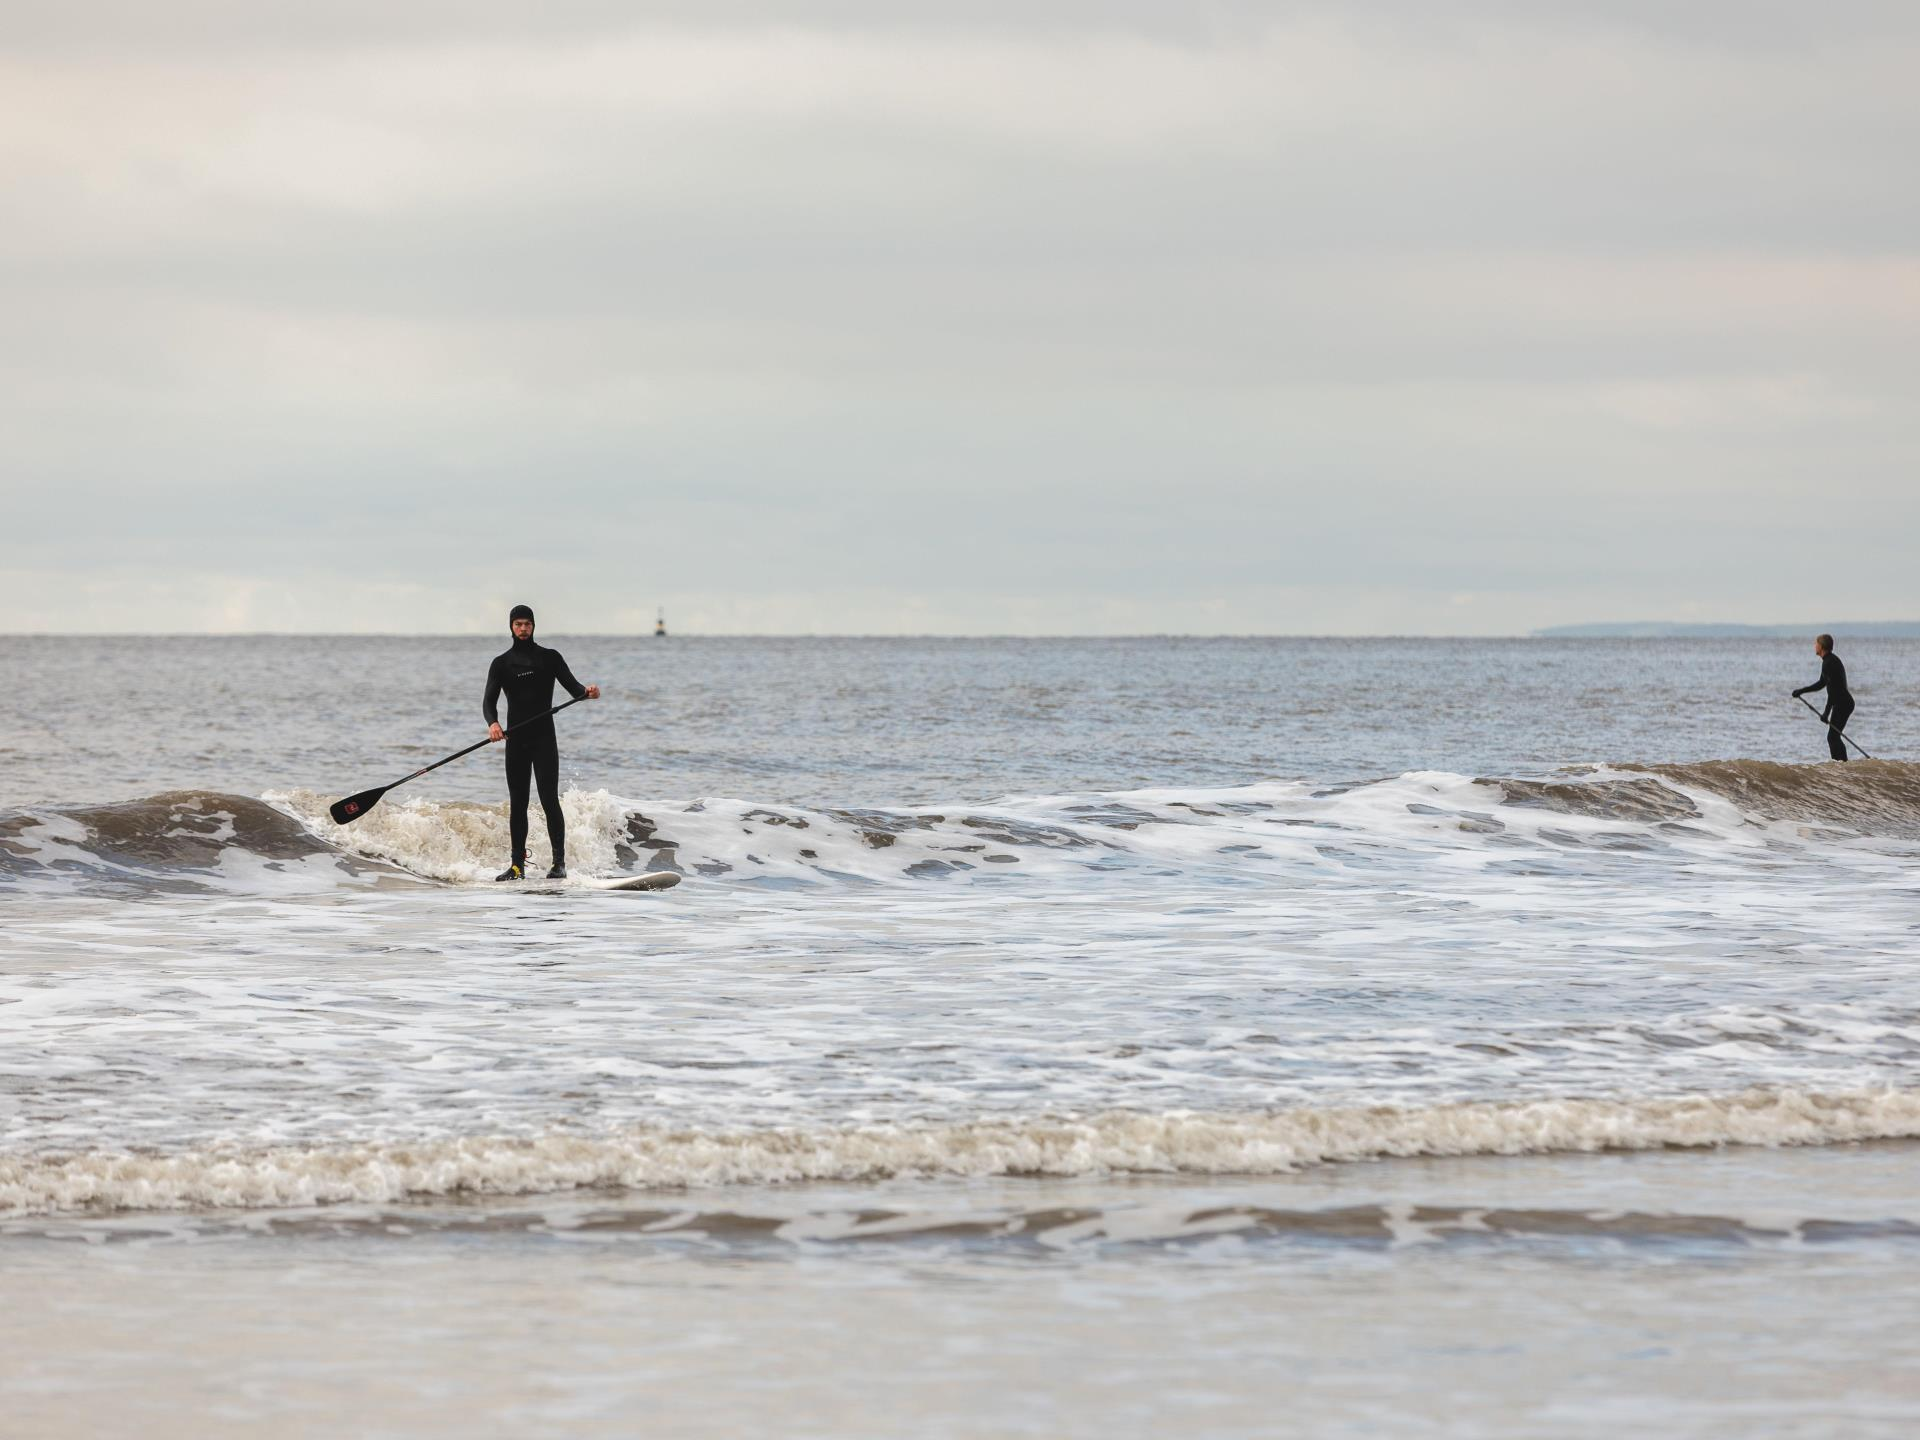 Paddle Boarding at Rest Bay, Porthcawl